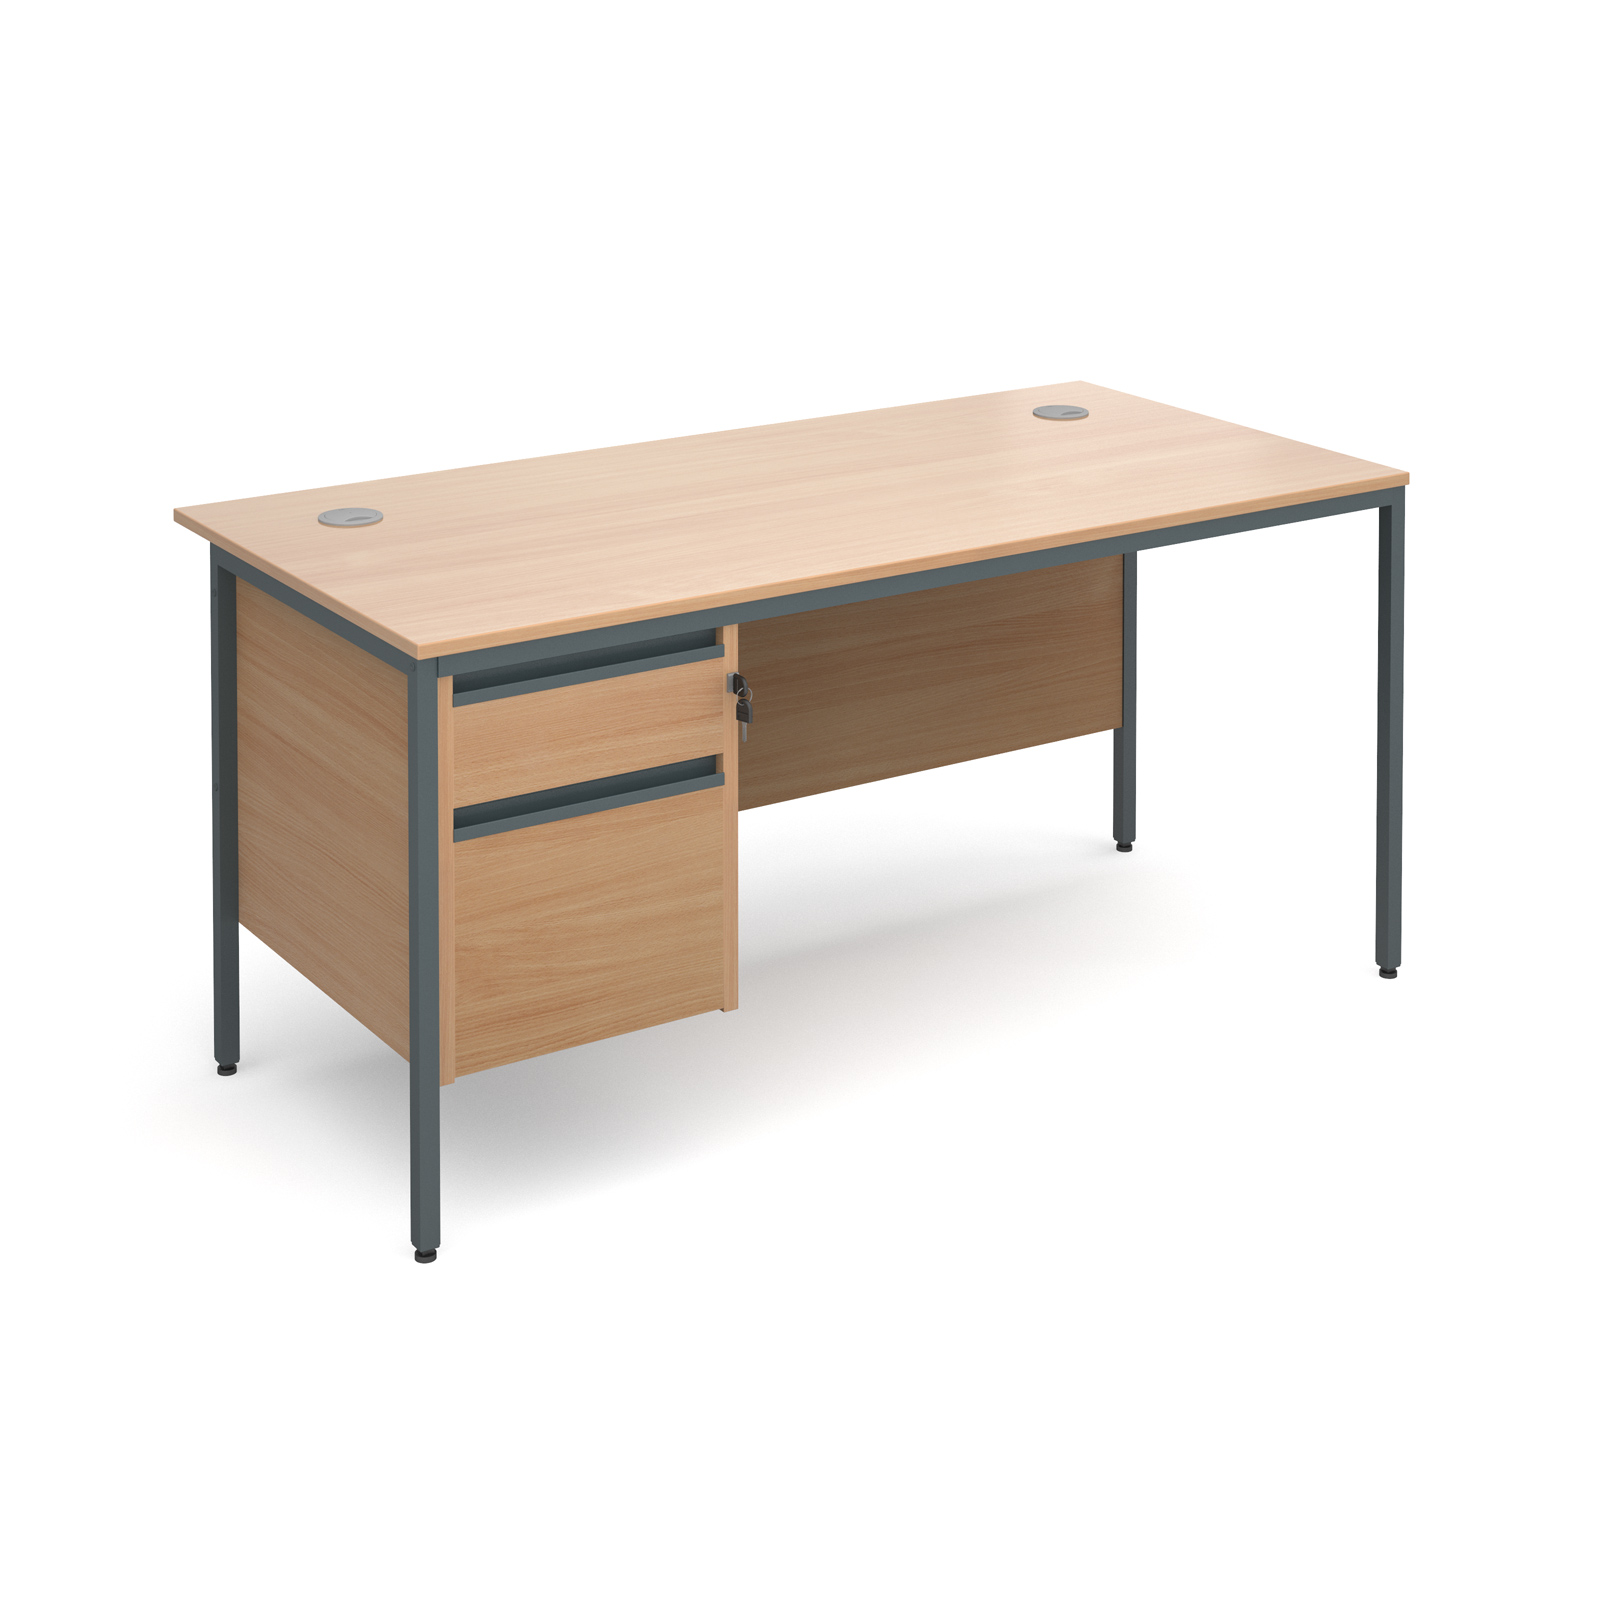 Maestro H frame straight desk with 2 drawer pedestal 1532mm - beech